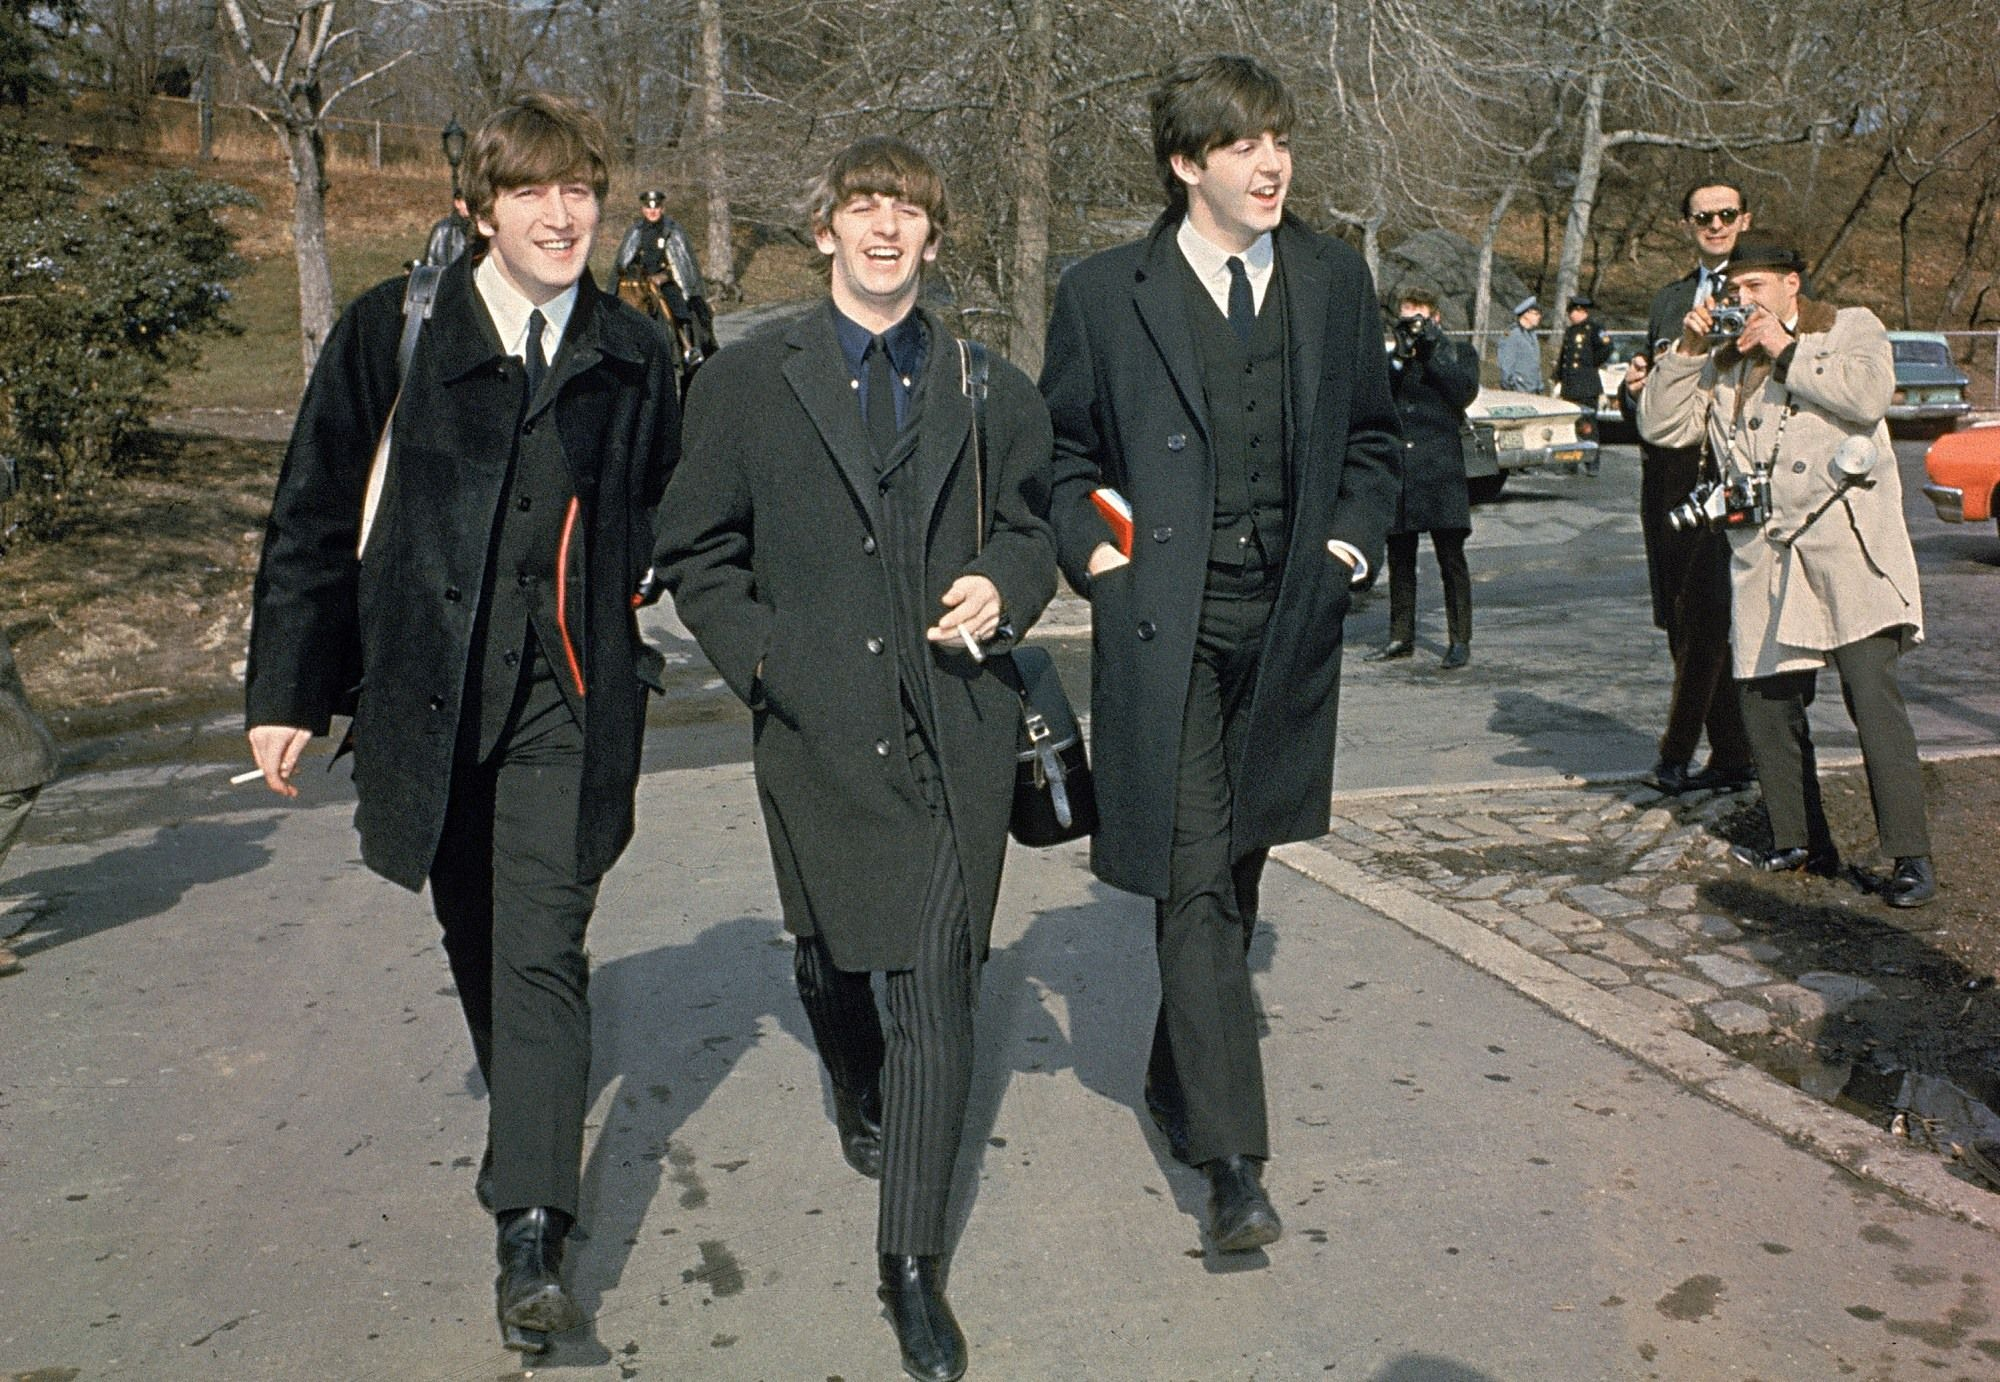 John, Ringo and Paul in Central Park, NYC February 1964